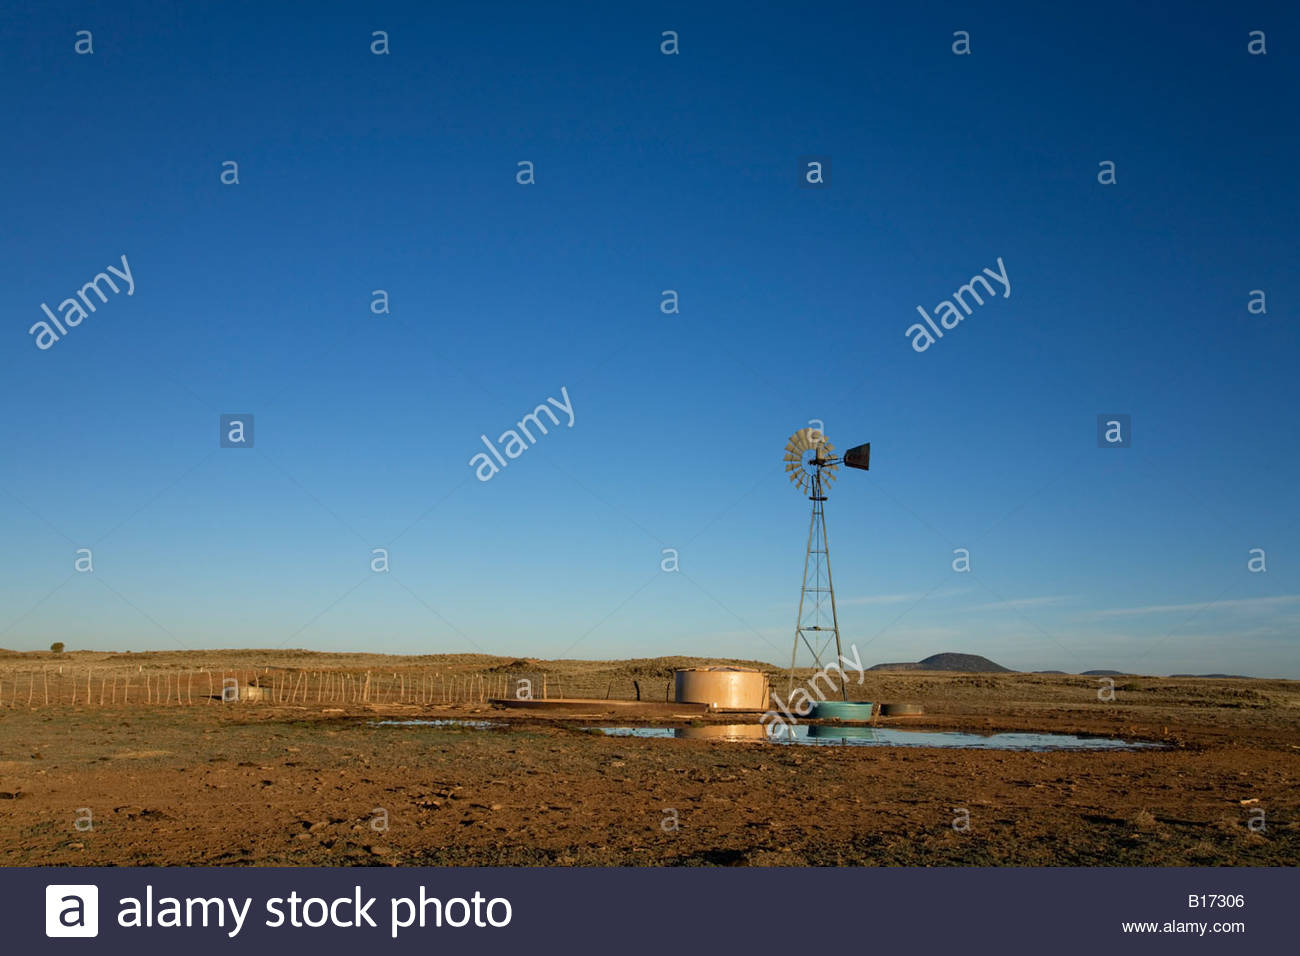 Windmill pumping water watering livestock cattle cows wind power - Stock Image